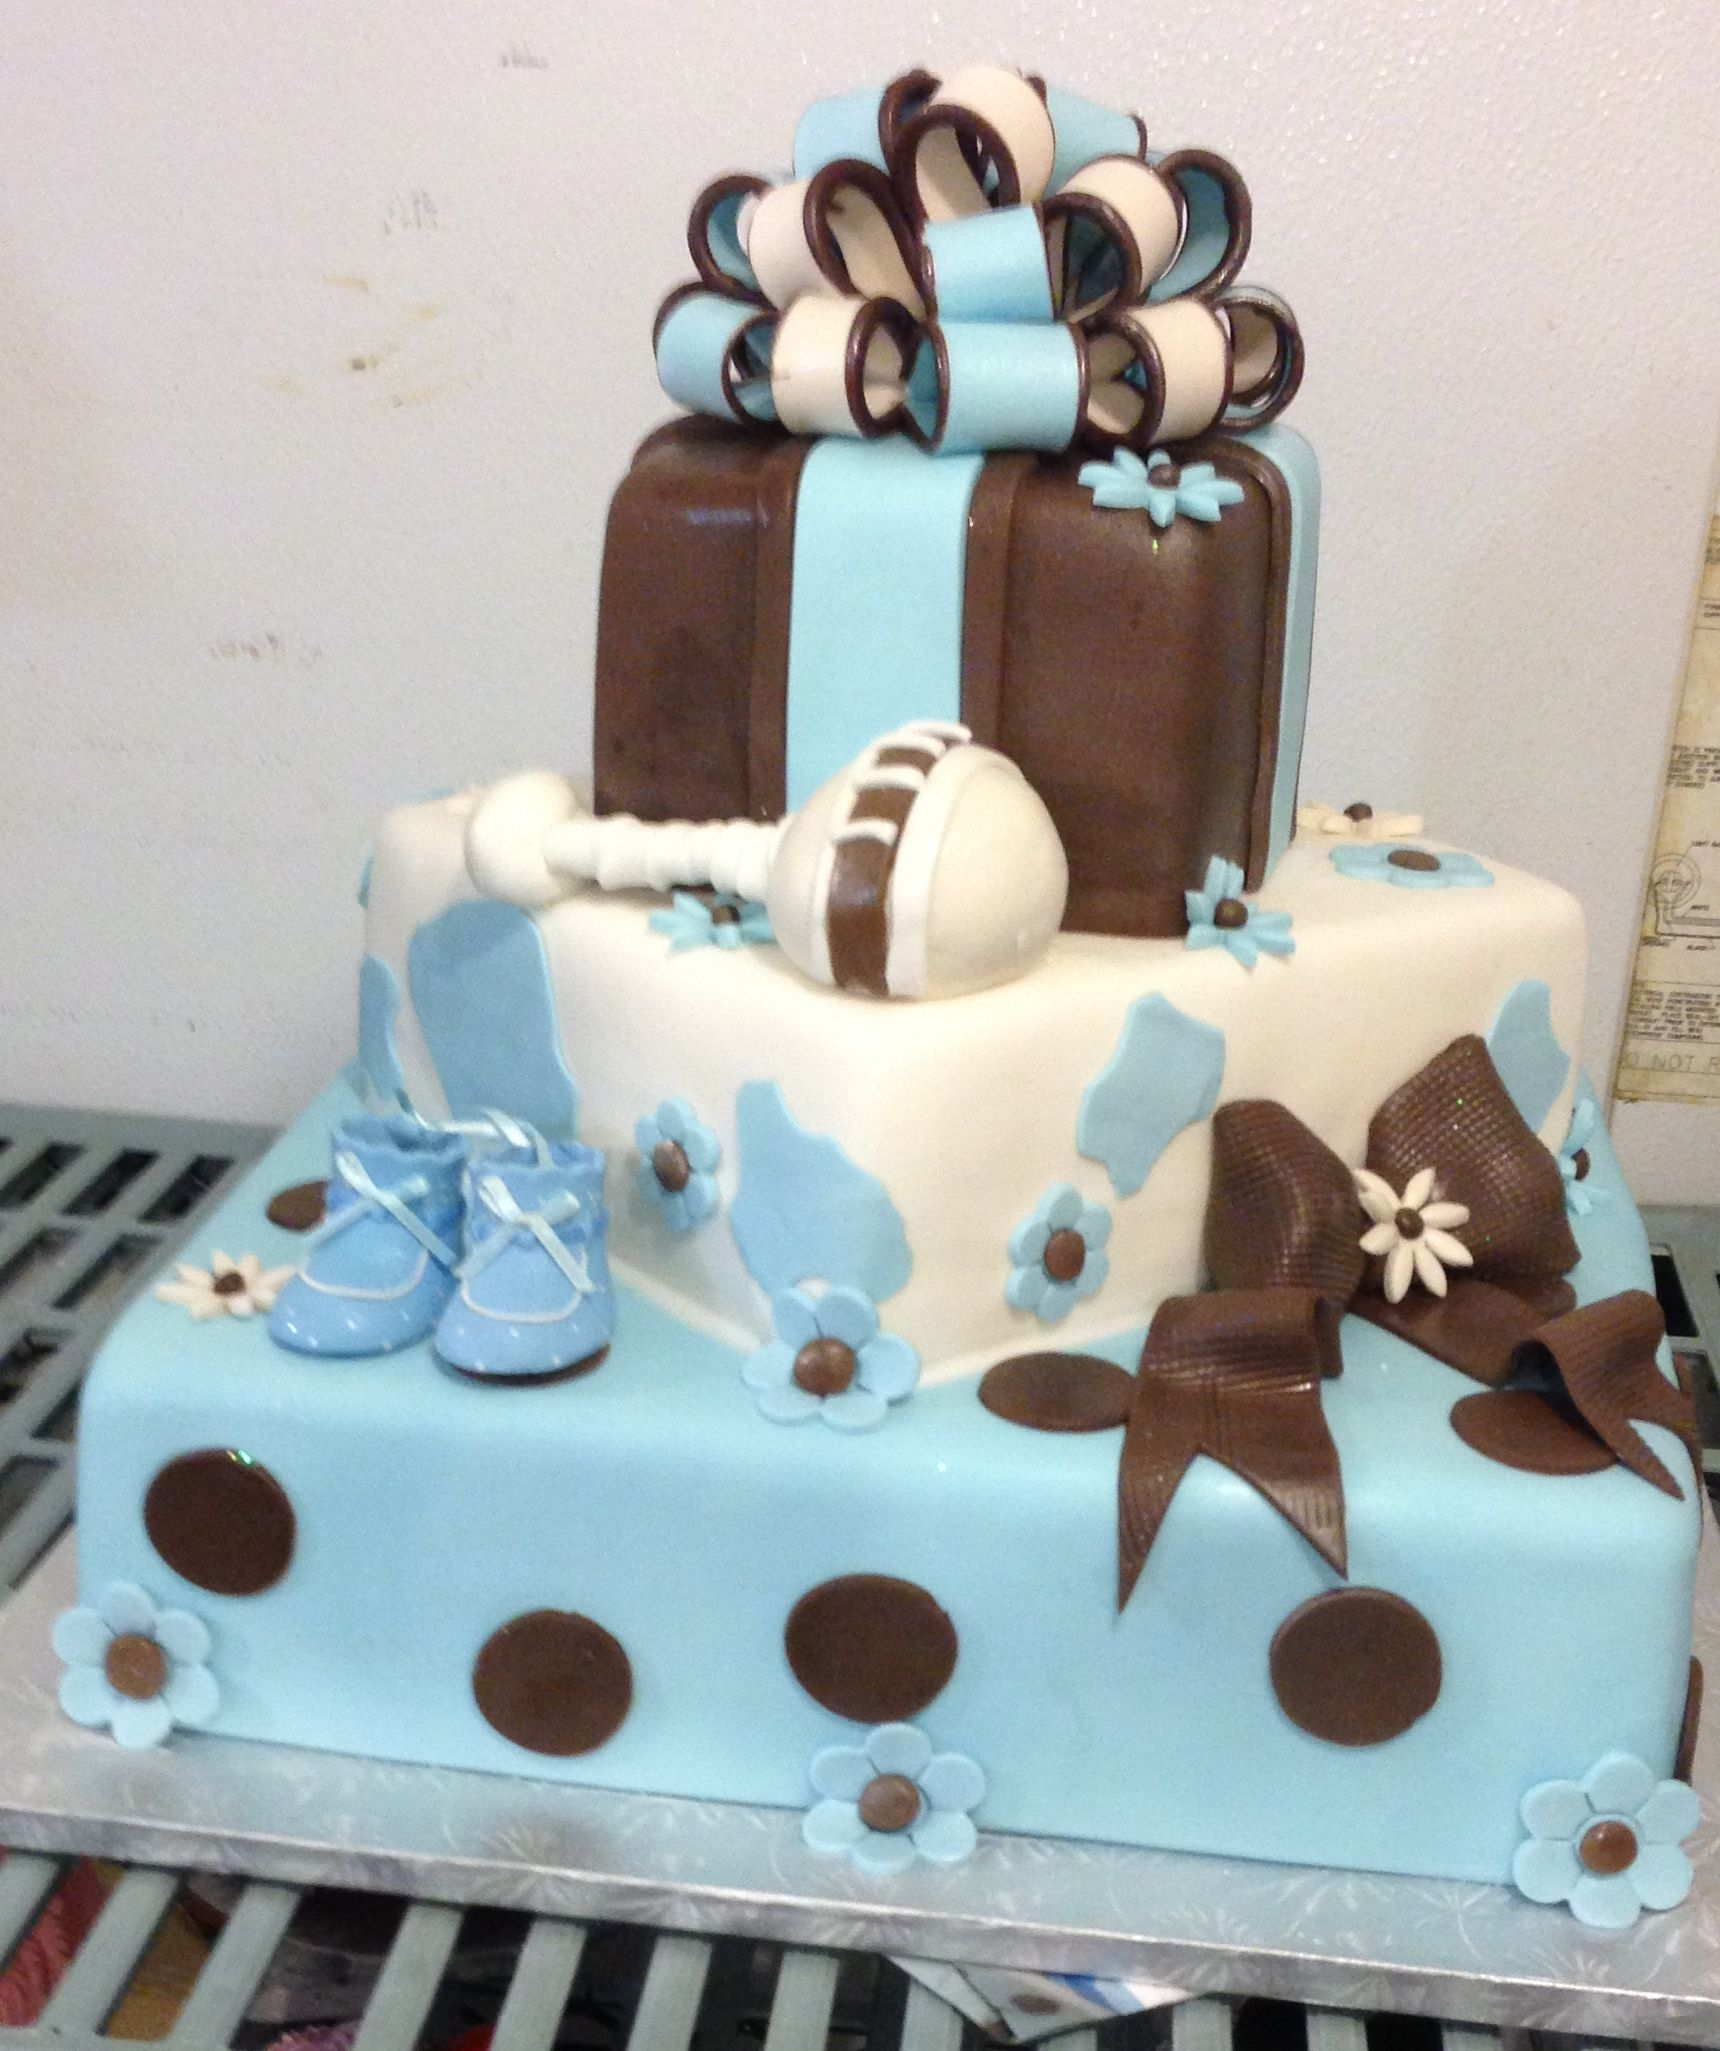 Cake Designs At Albertsons : Baby Shower Cakes: Albertsons Baby Shower Cakes Designs